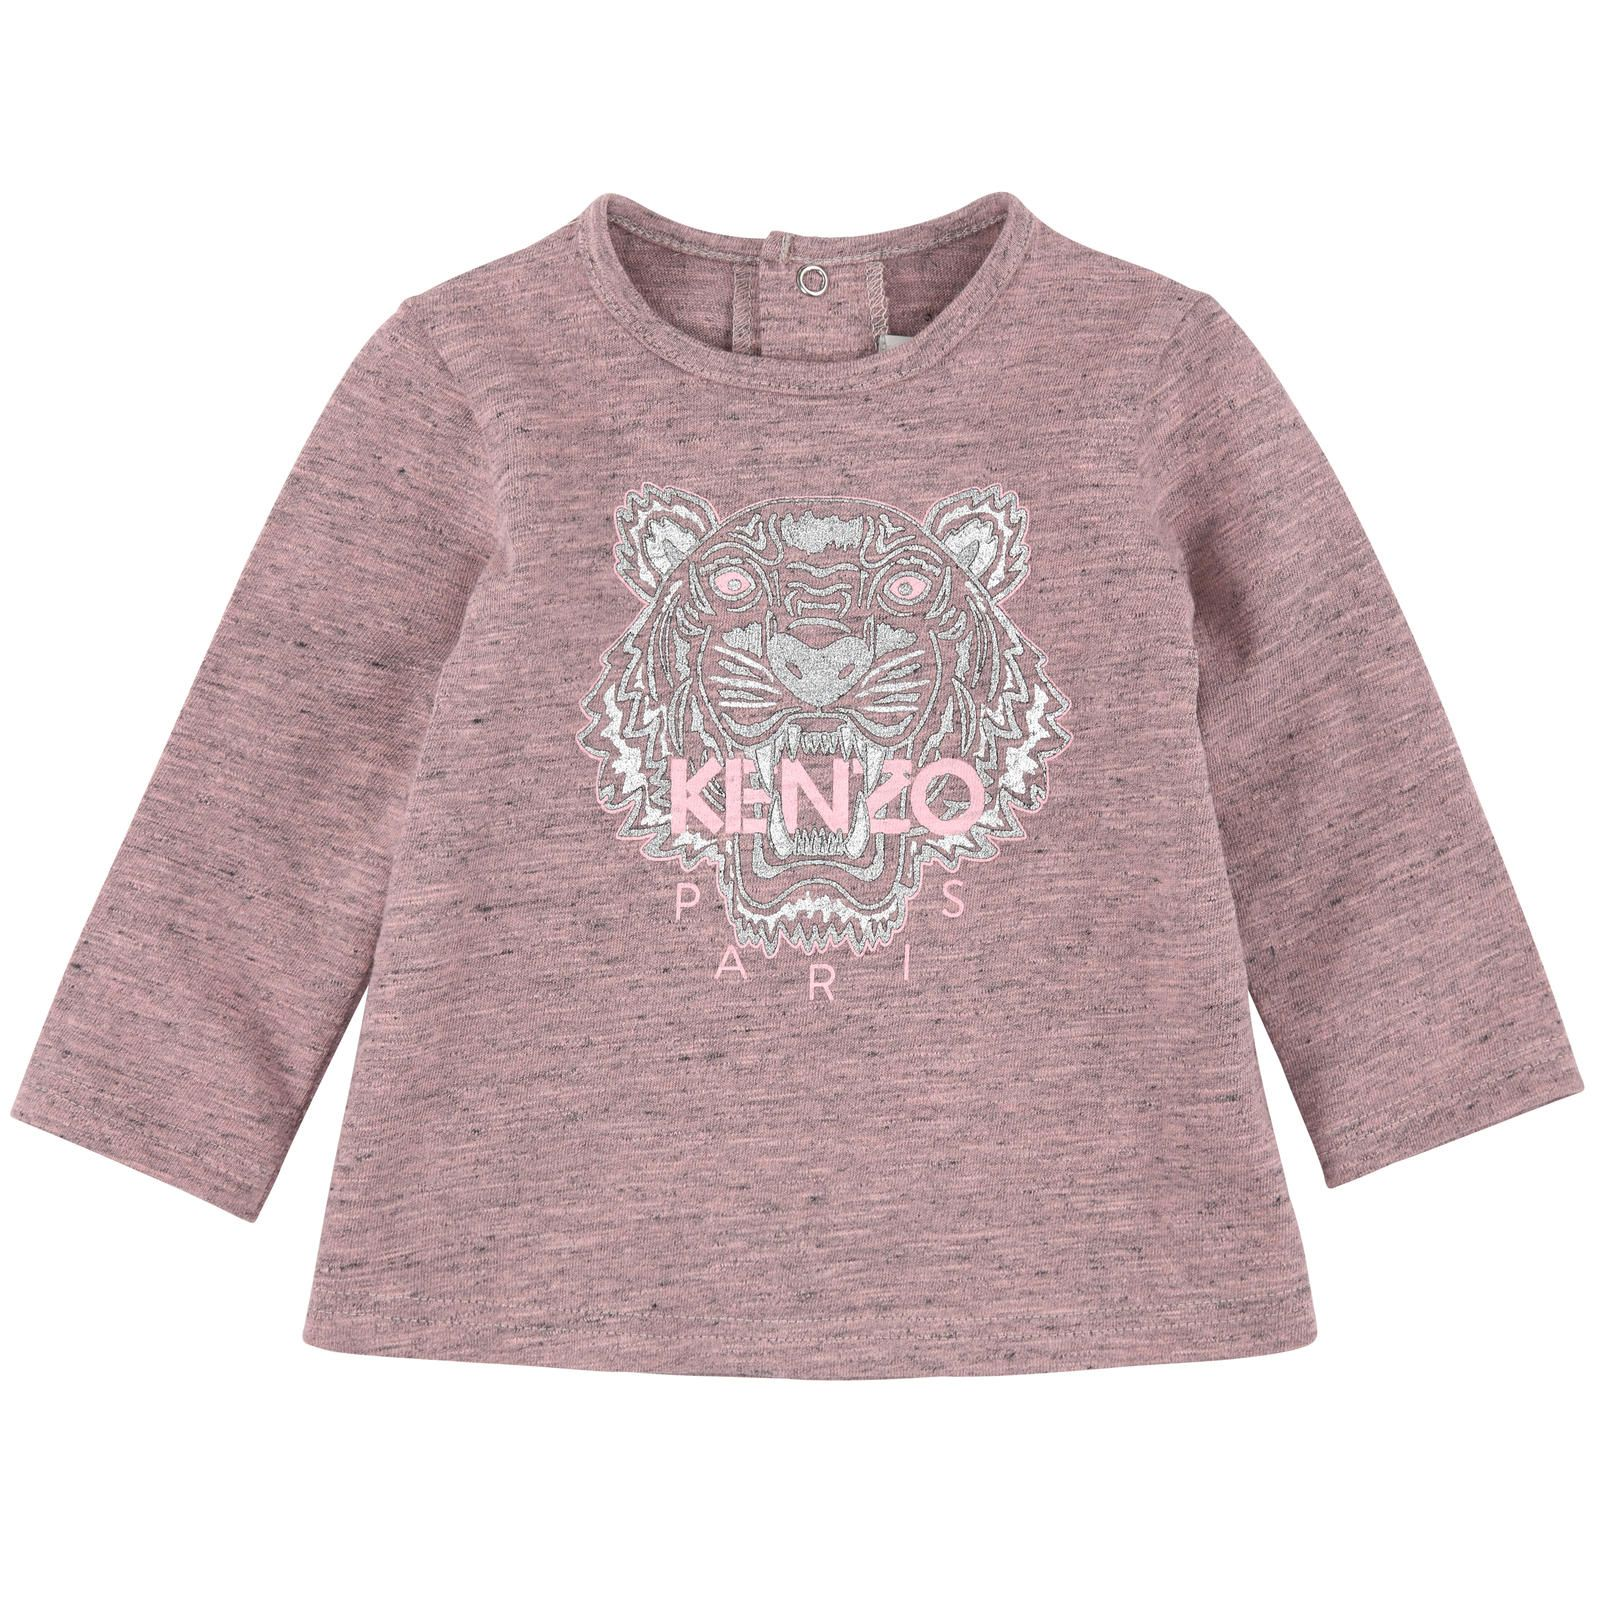 Kenzo long sleeved cotton jersey T shirt Round neck with three snap